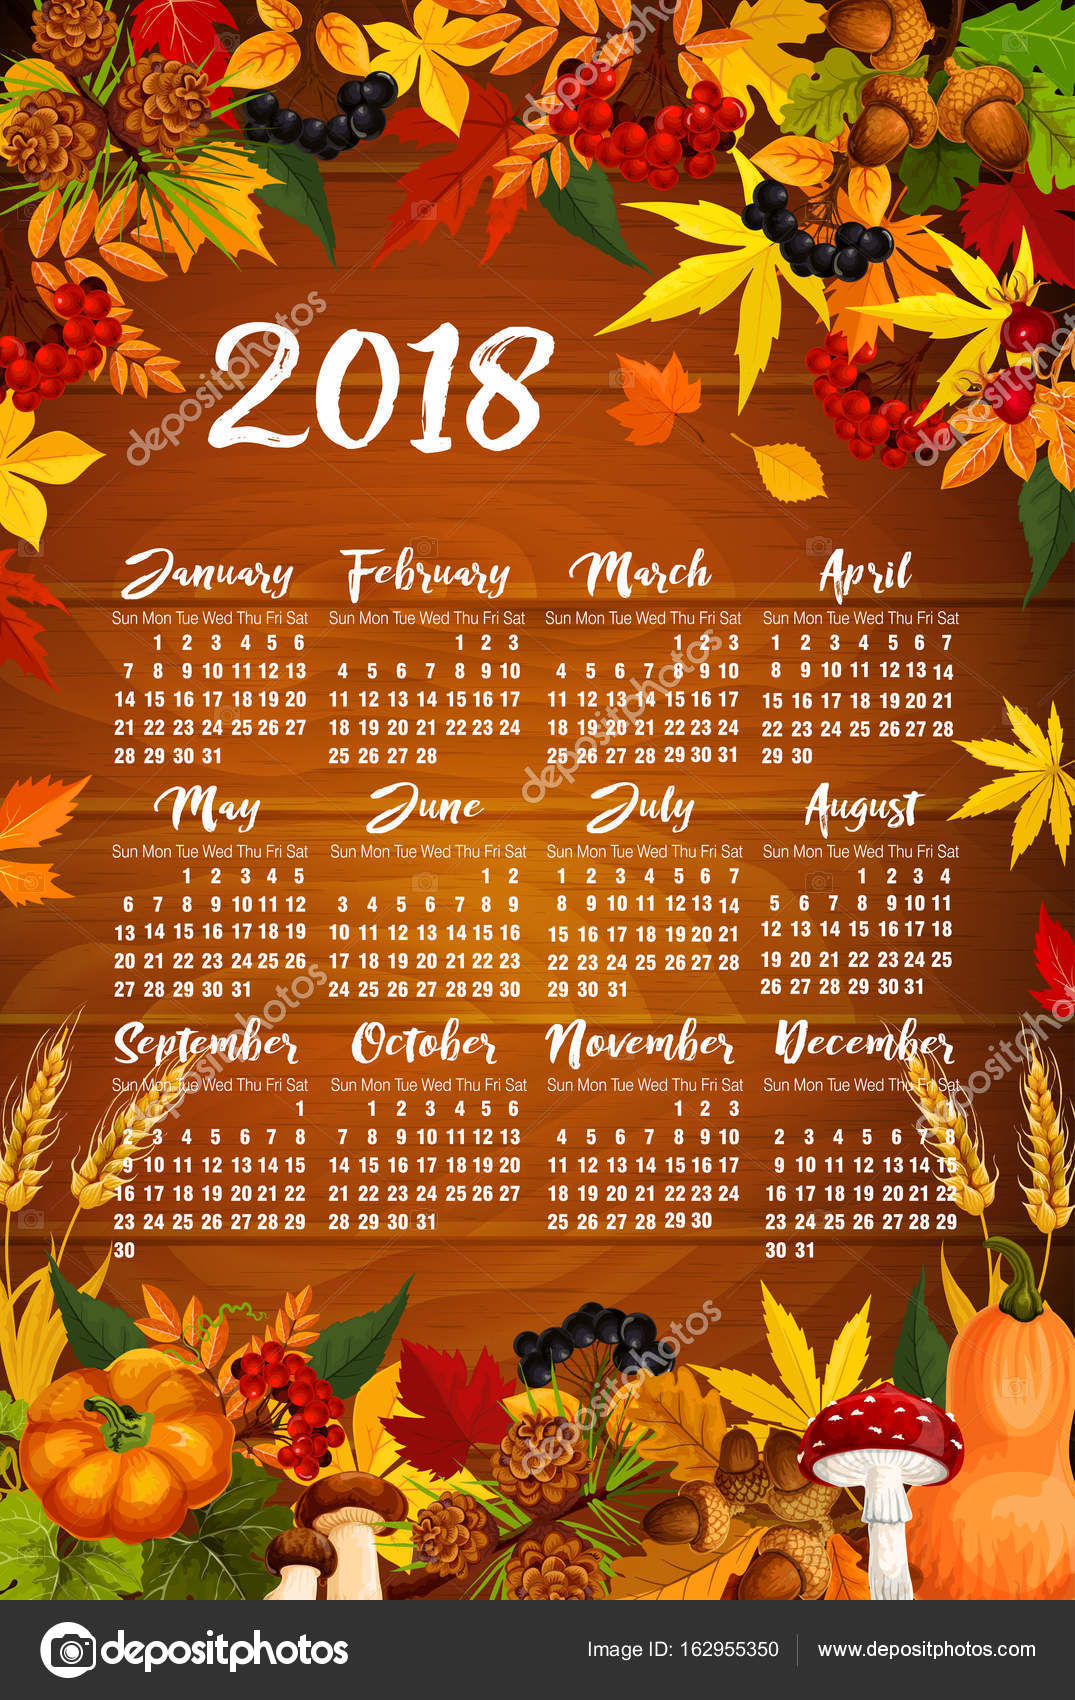 autumn 2018 calendar template poster of maple leaf fall rowan berry or oak acorn and pumpkin or mushroom forest harvest autumn seasonal foliage fir or